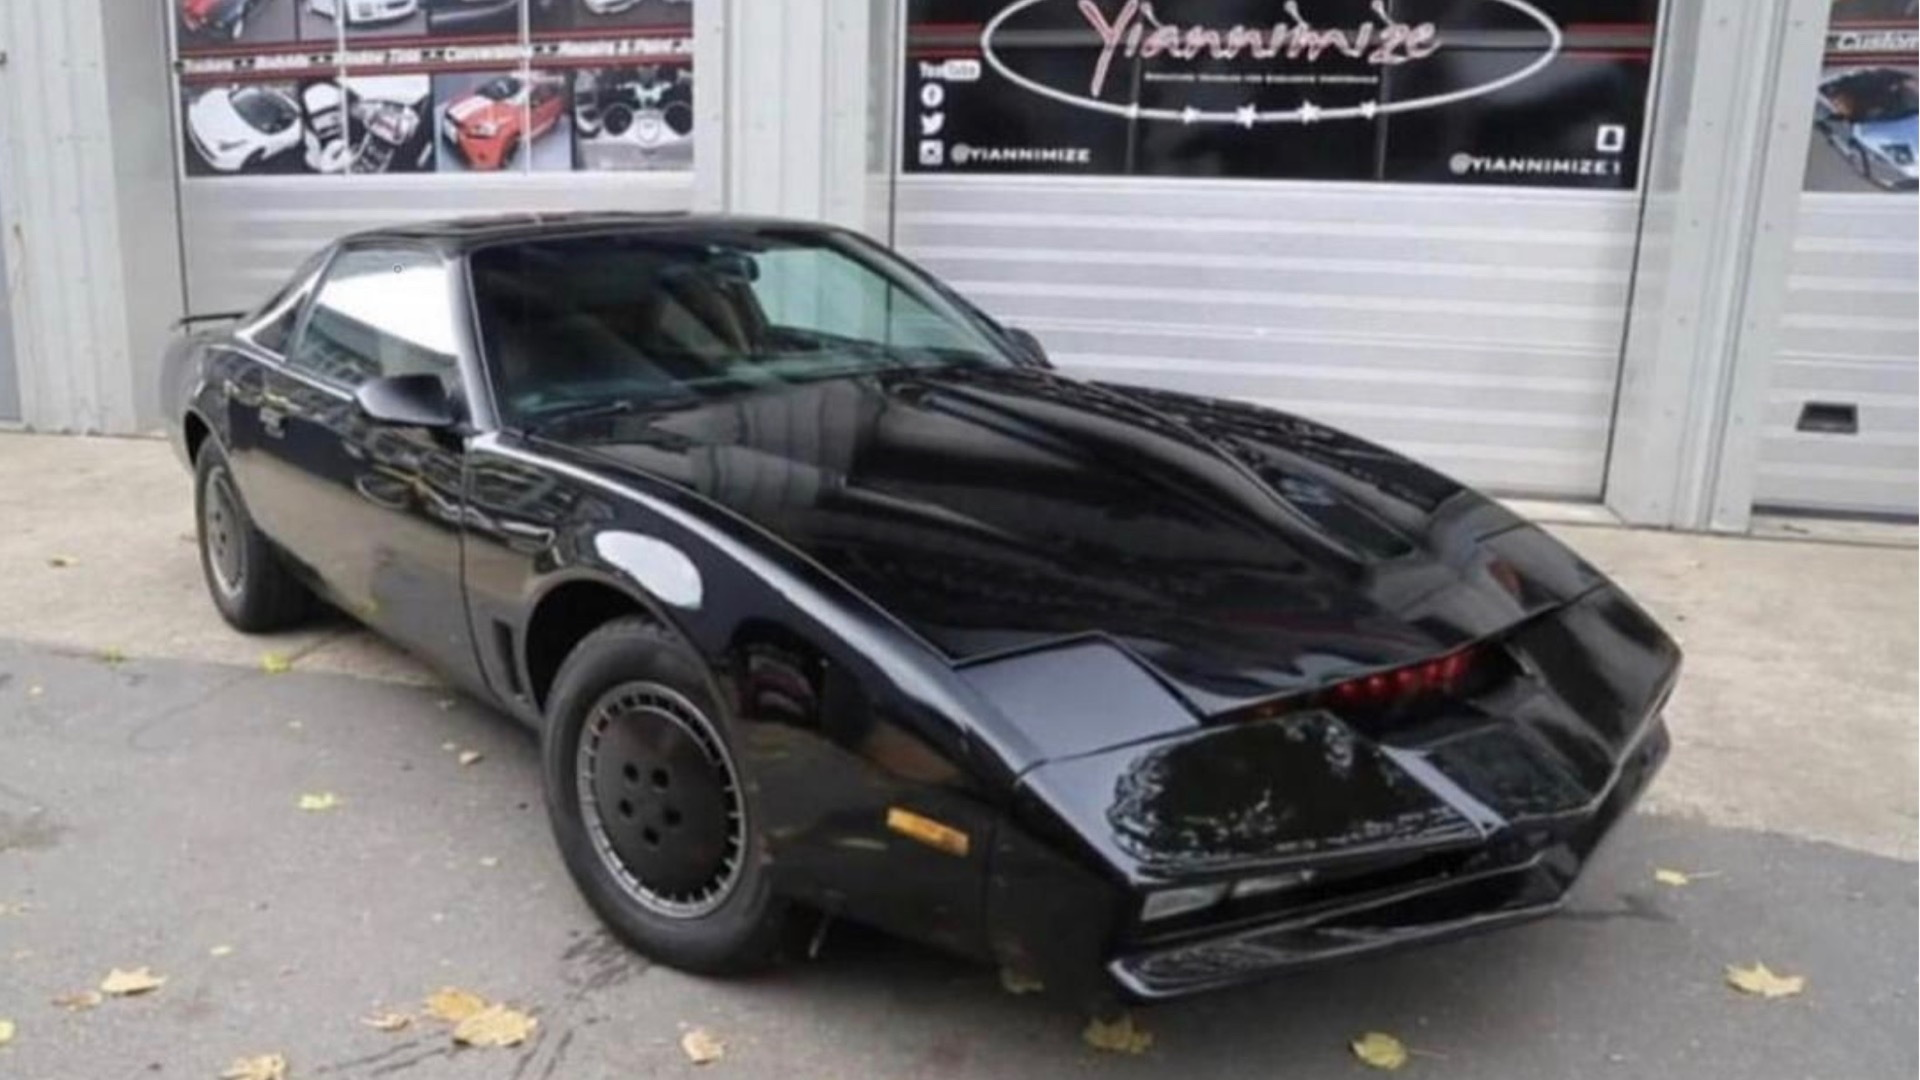 KITT Pontiac Firebird Trans Am owned by David Hasselhoff (Photo by LiveAuctioneers)